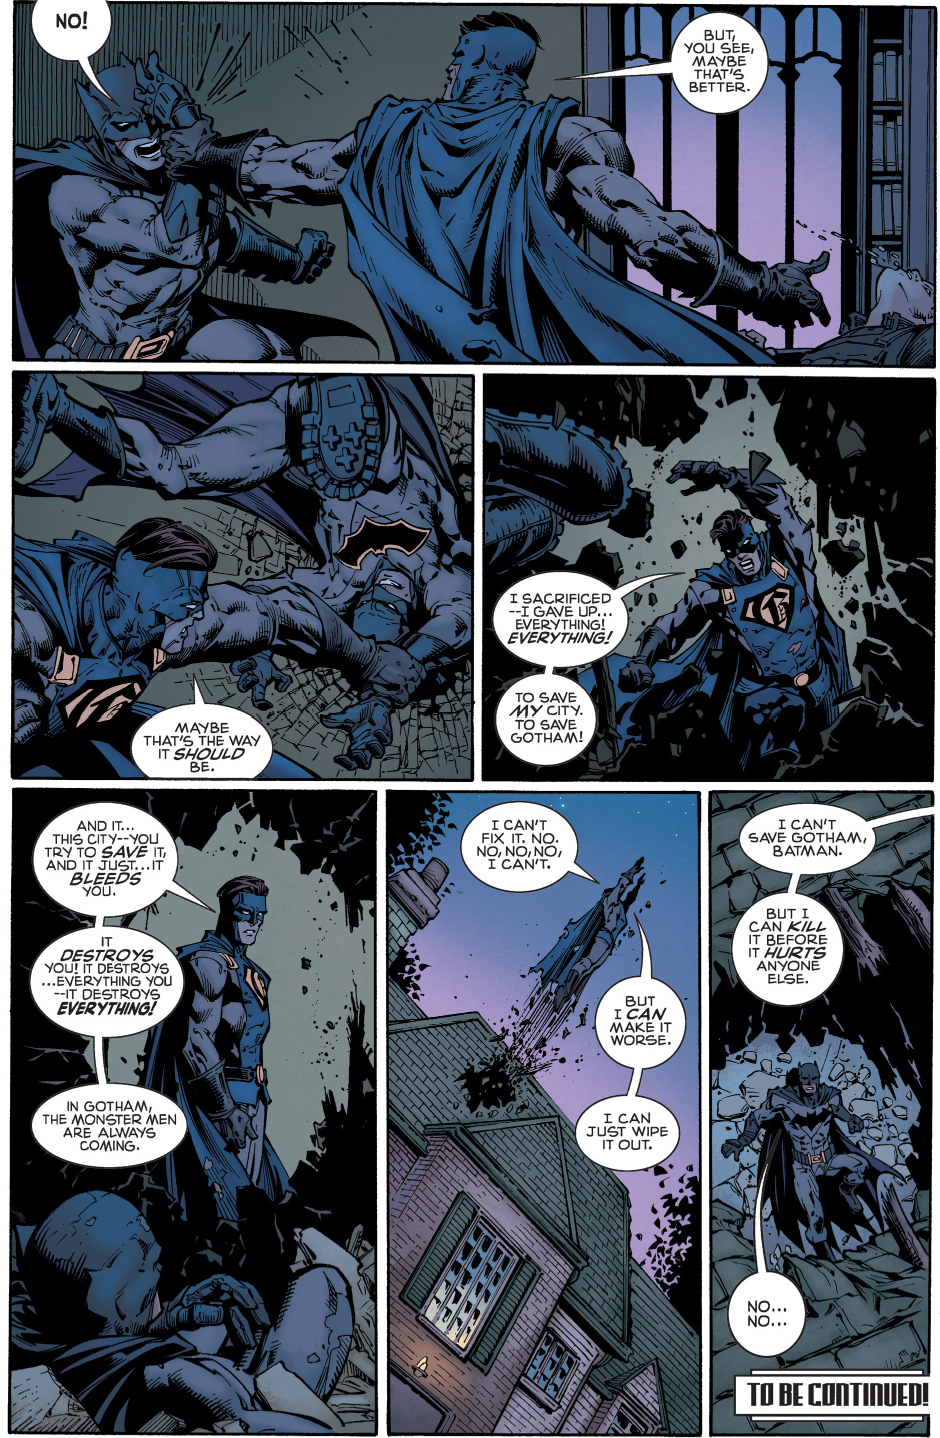 gothams-parents-are-murdered